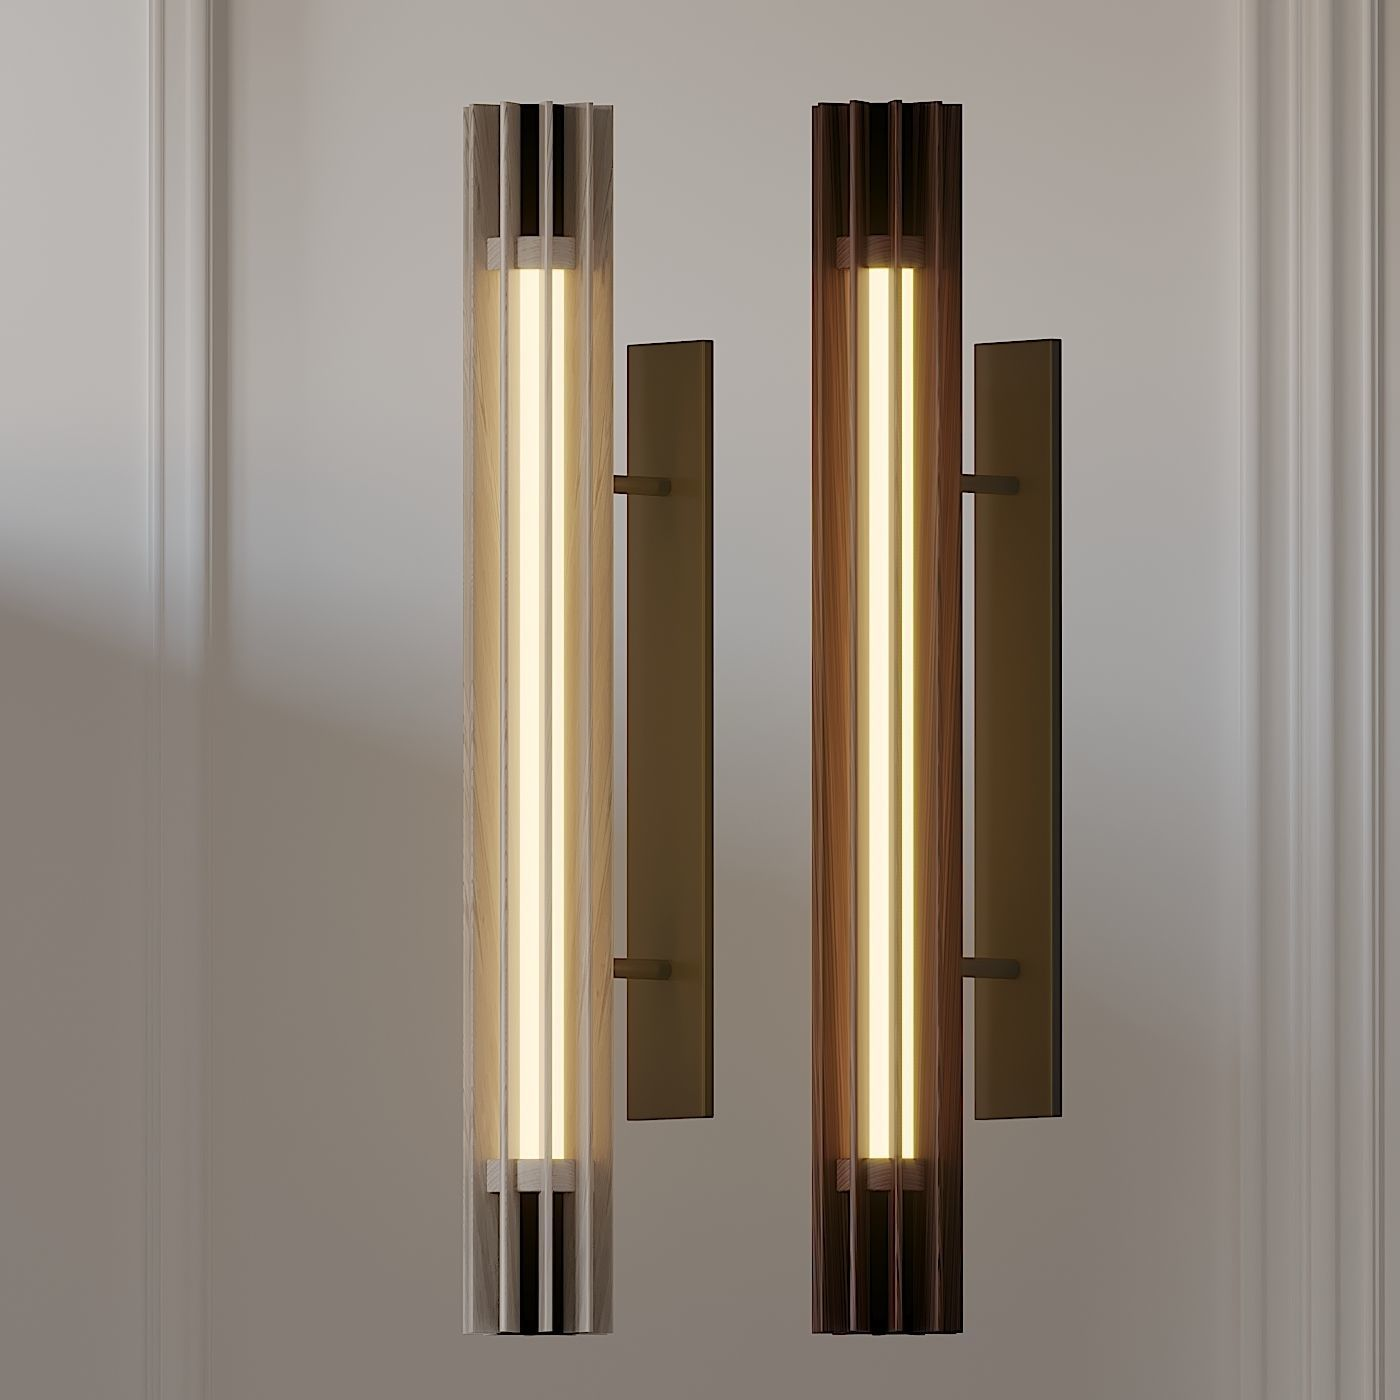 BEACON 30 Wall SCONCE by Allied Maker